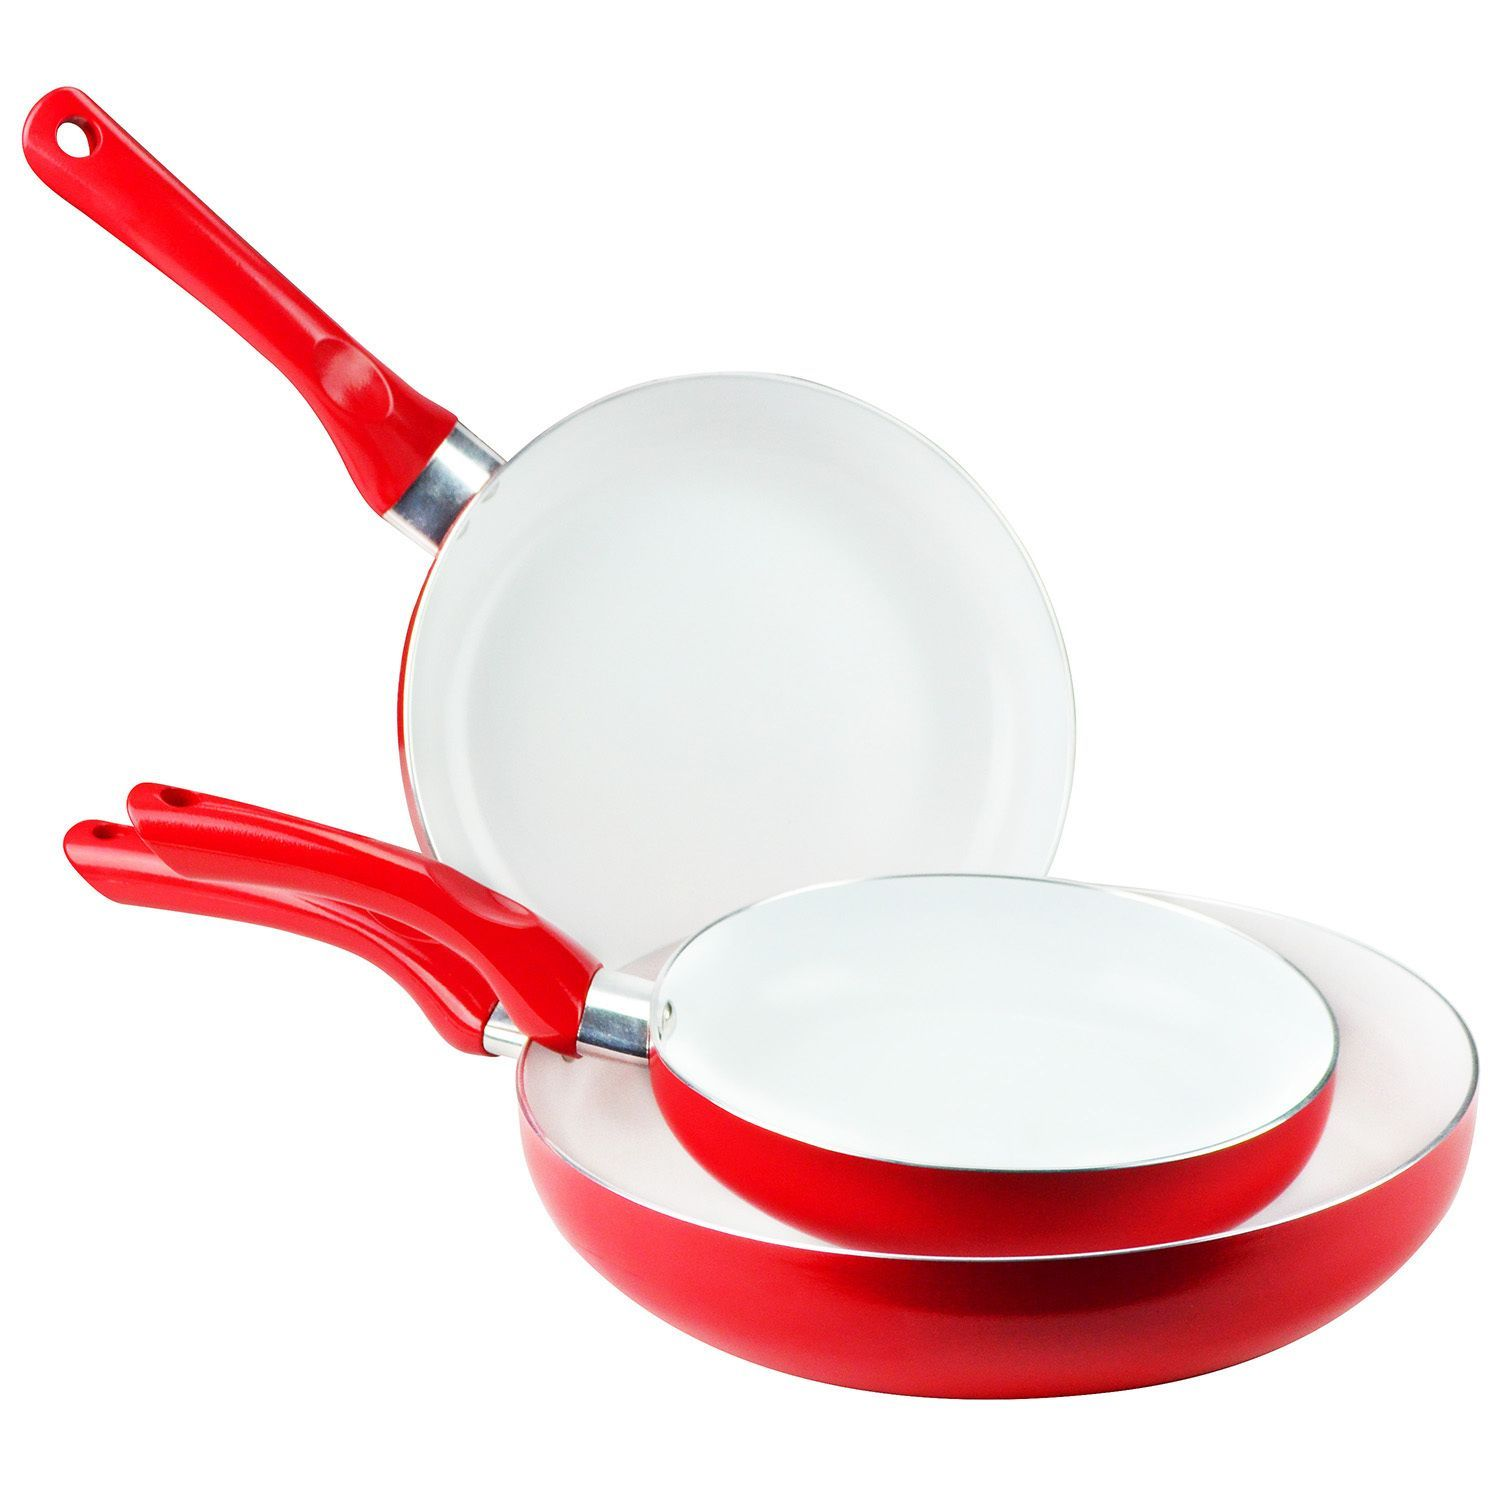 Use the 9 pieces of this Fry Pan Set to serve your dinner guests with style.